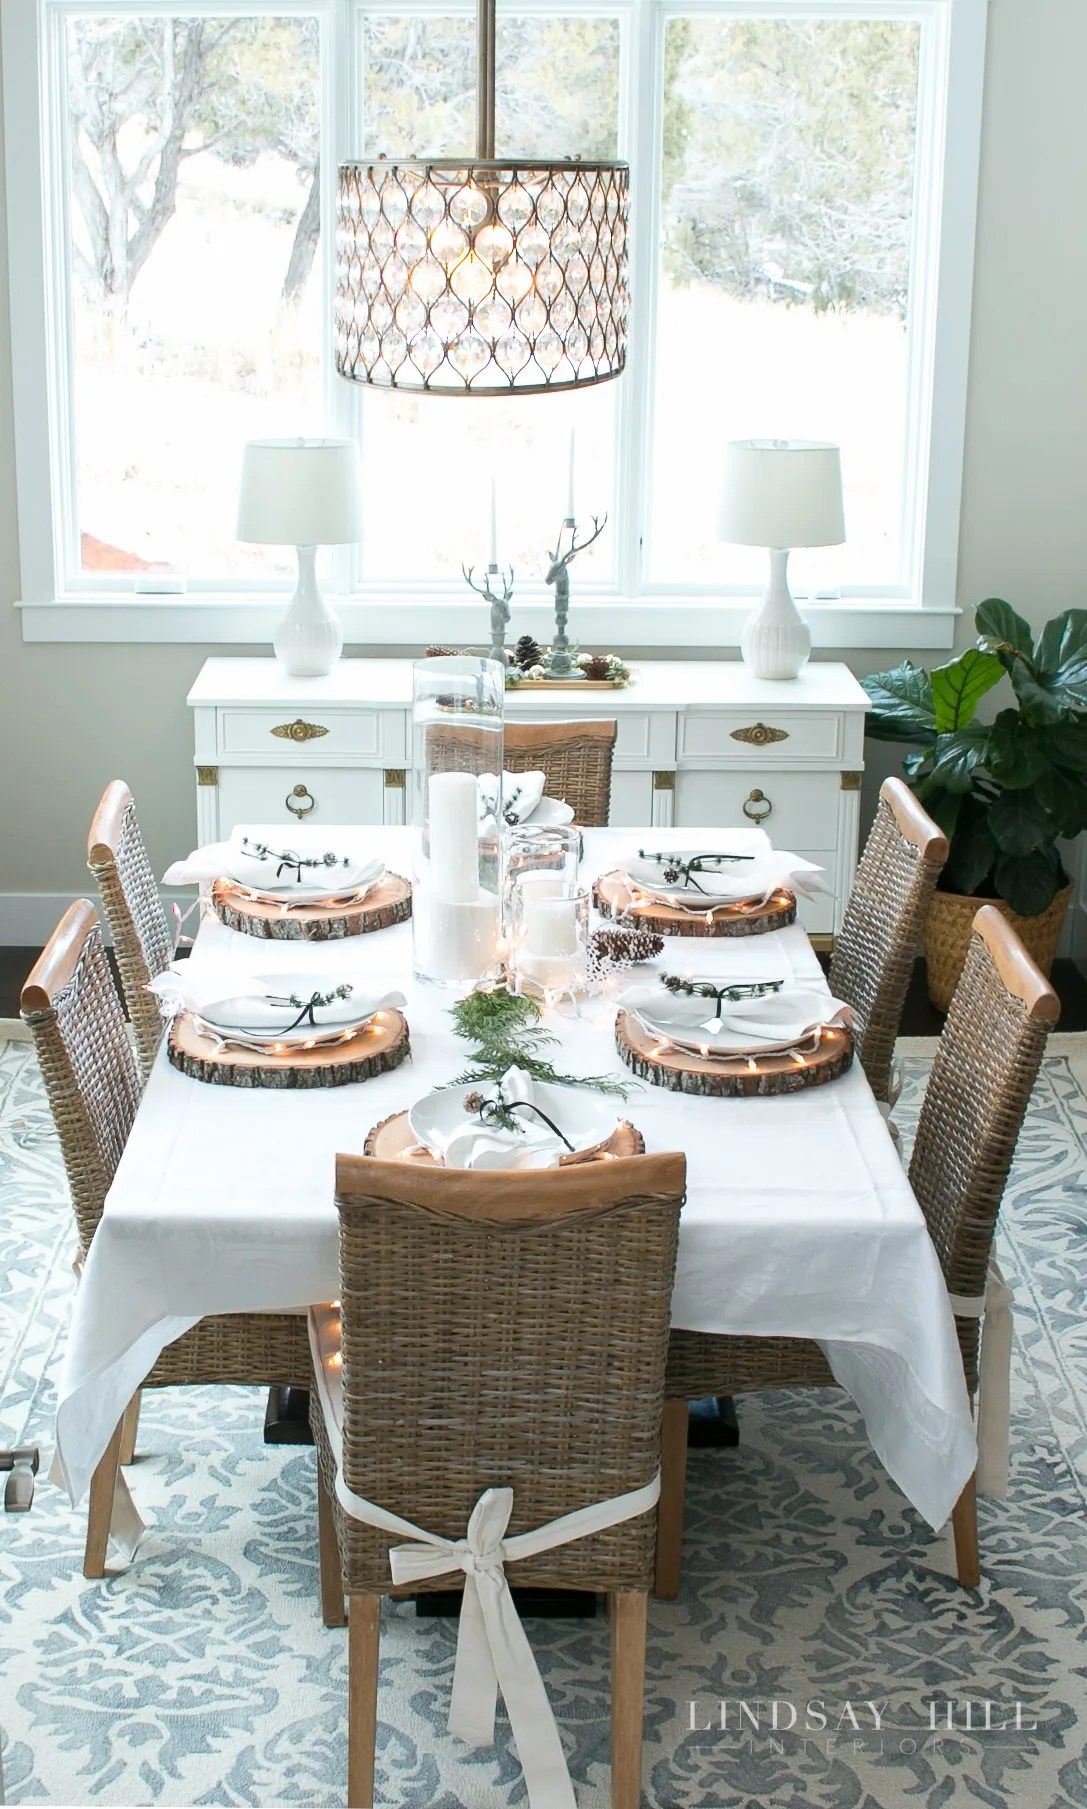 lindsay hill interiors holiday dining room table